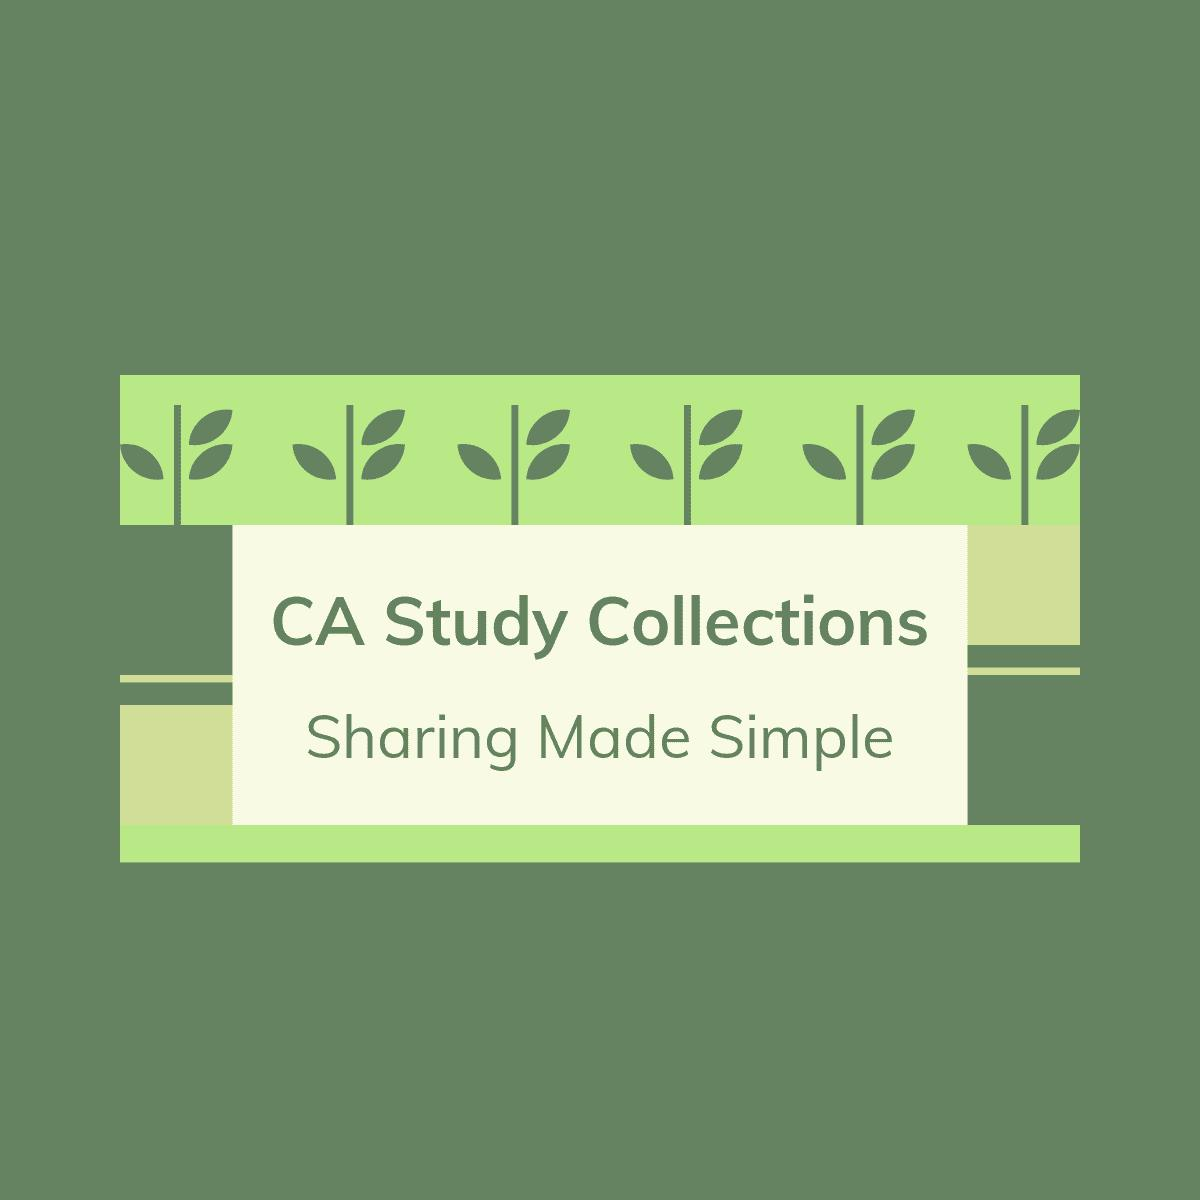 CA Study collections Logo